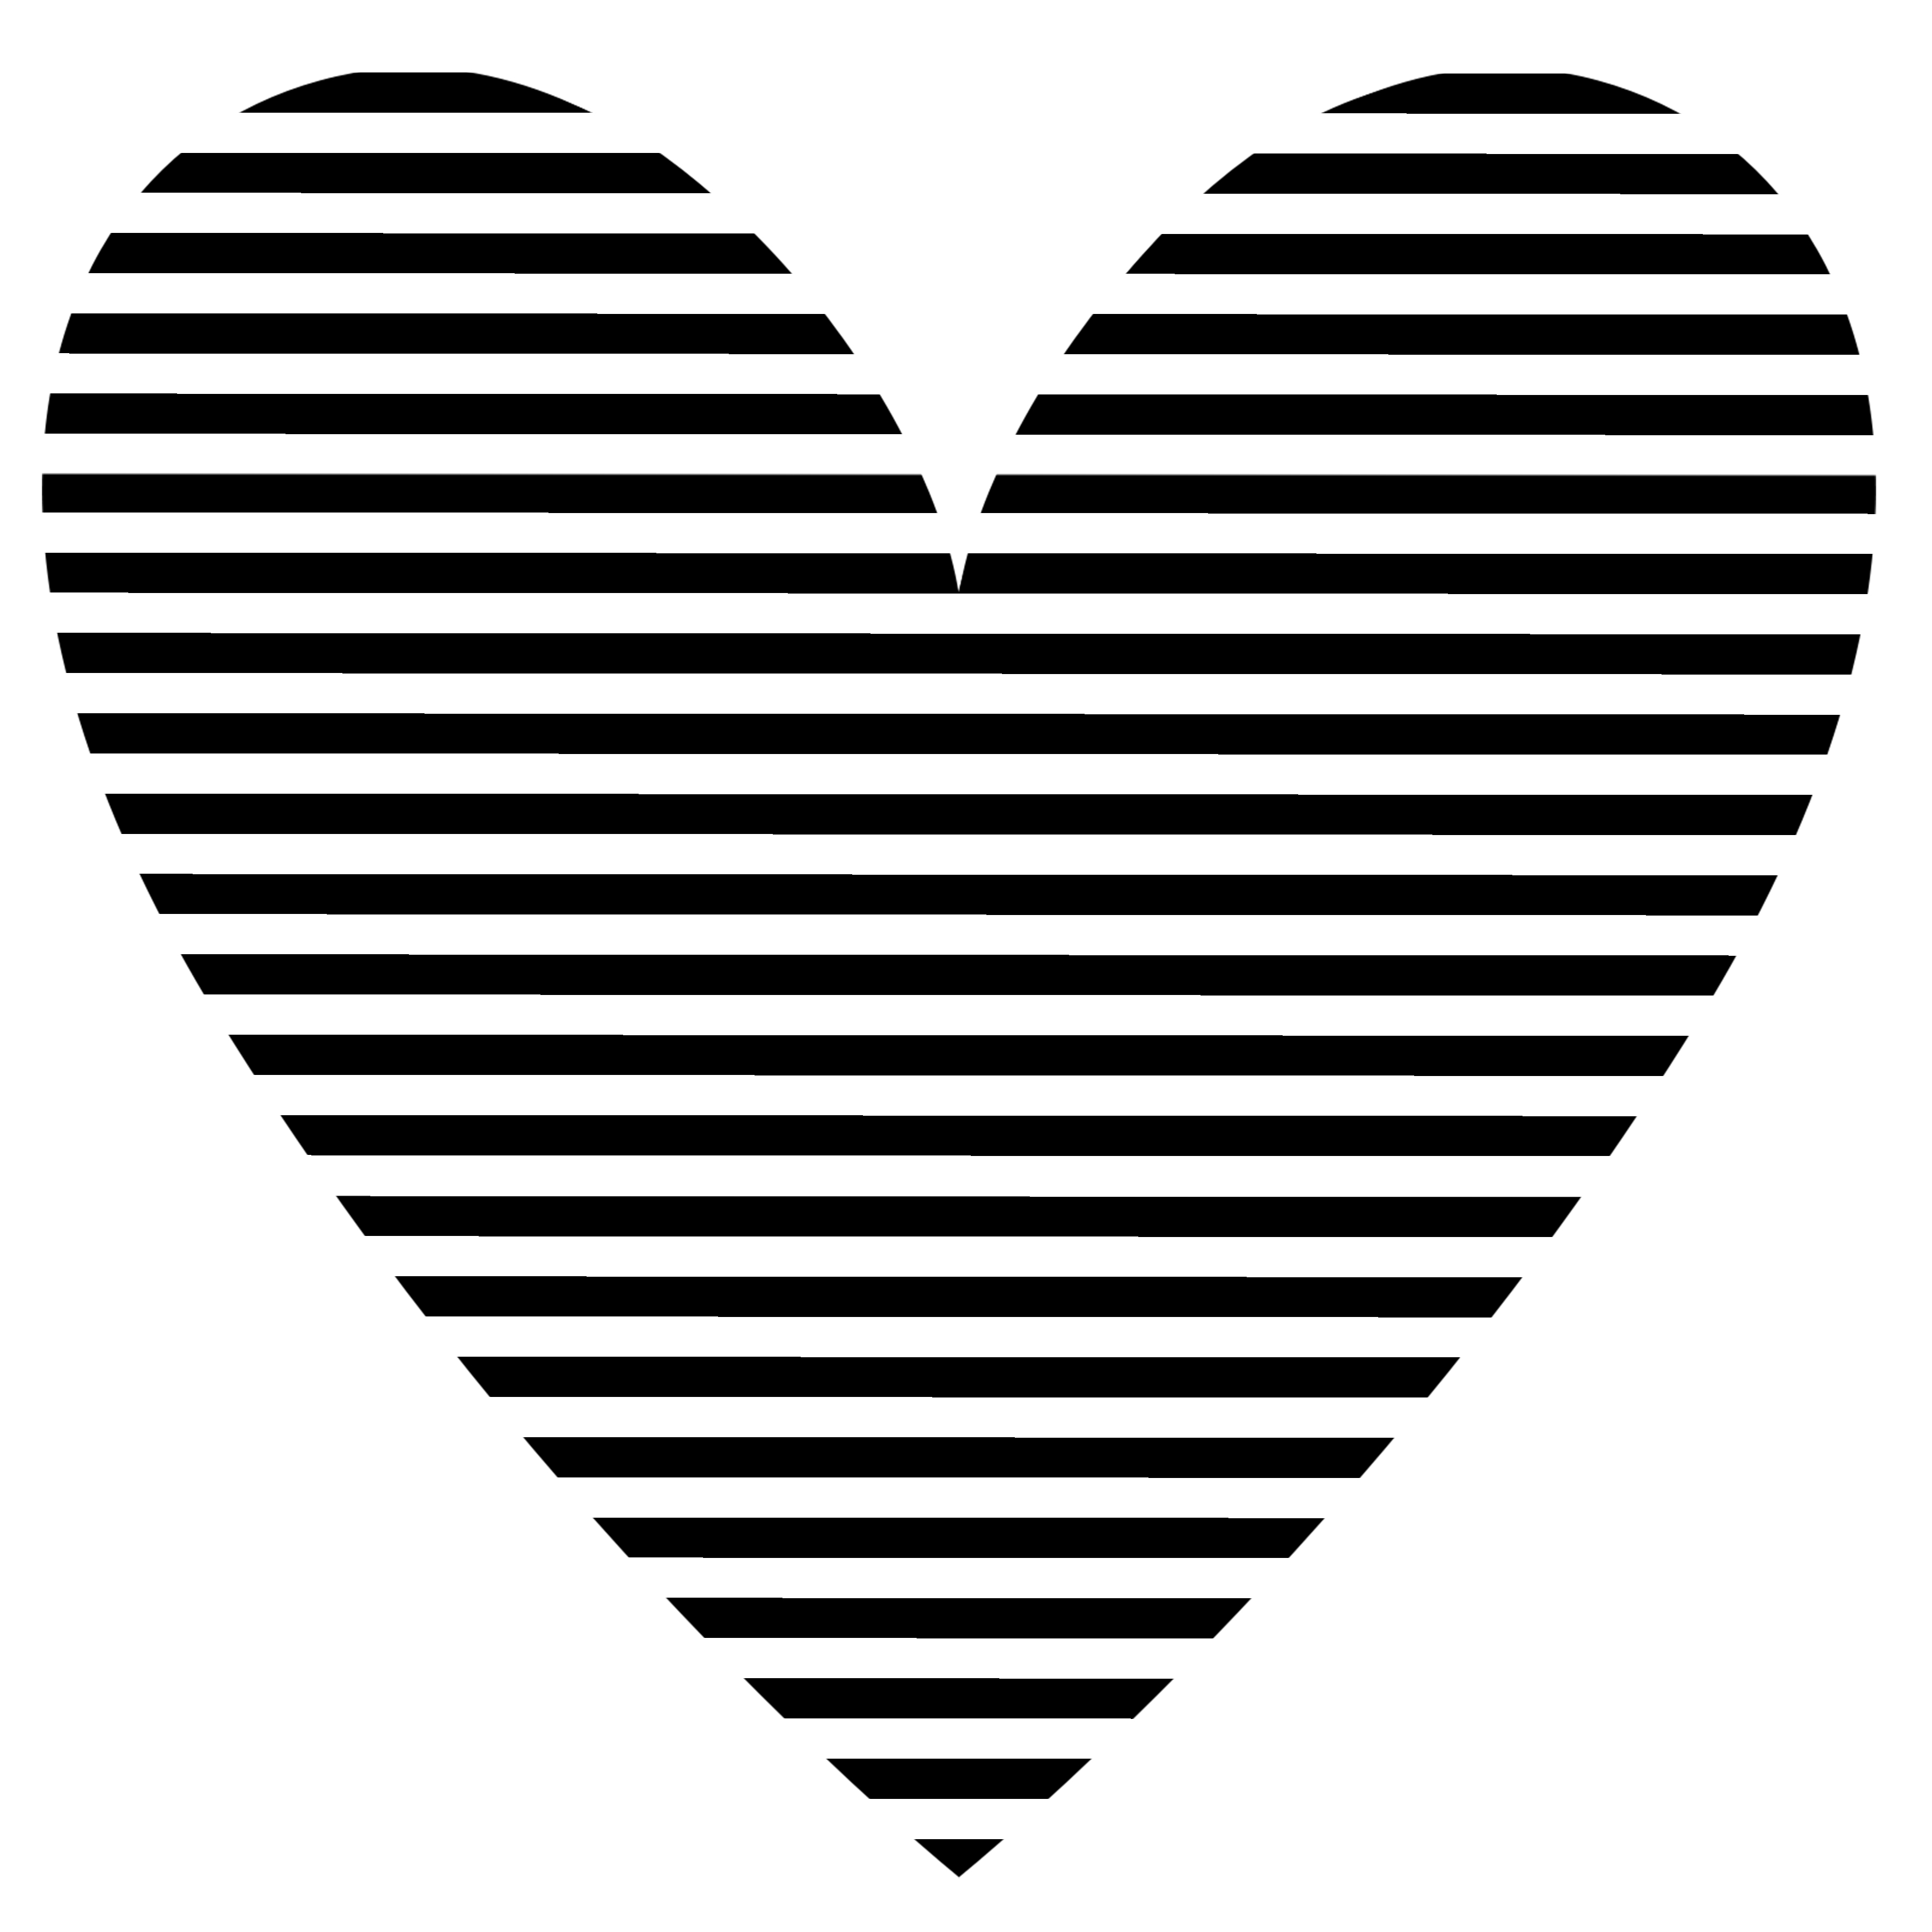 DIY Heart Shirts for Valentine's Day (the stripey kind ...